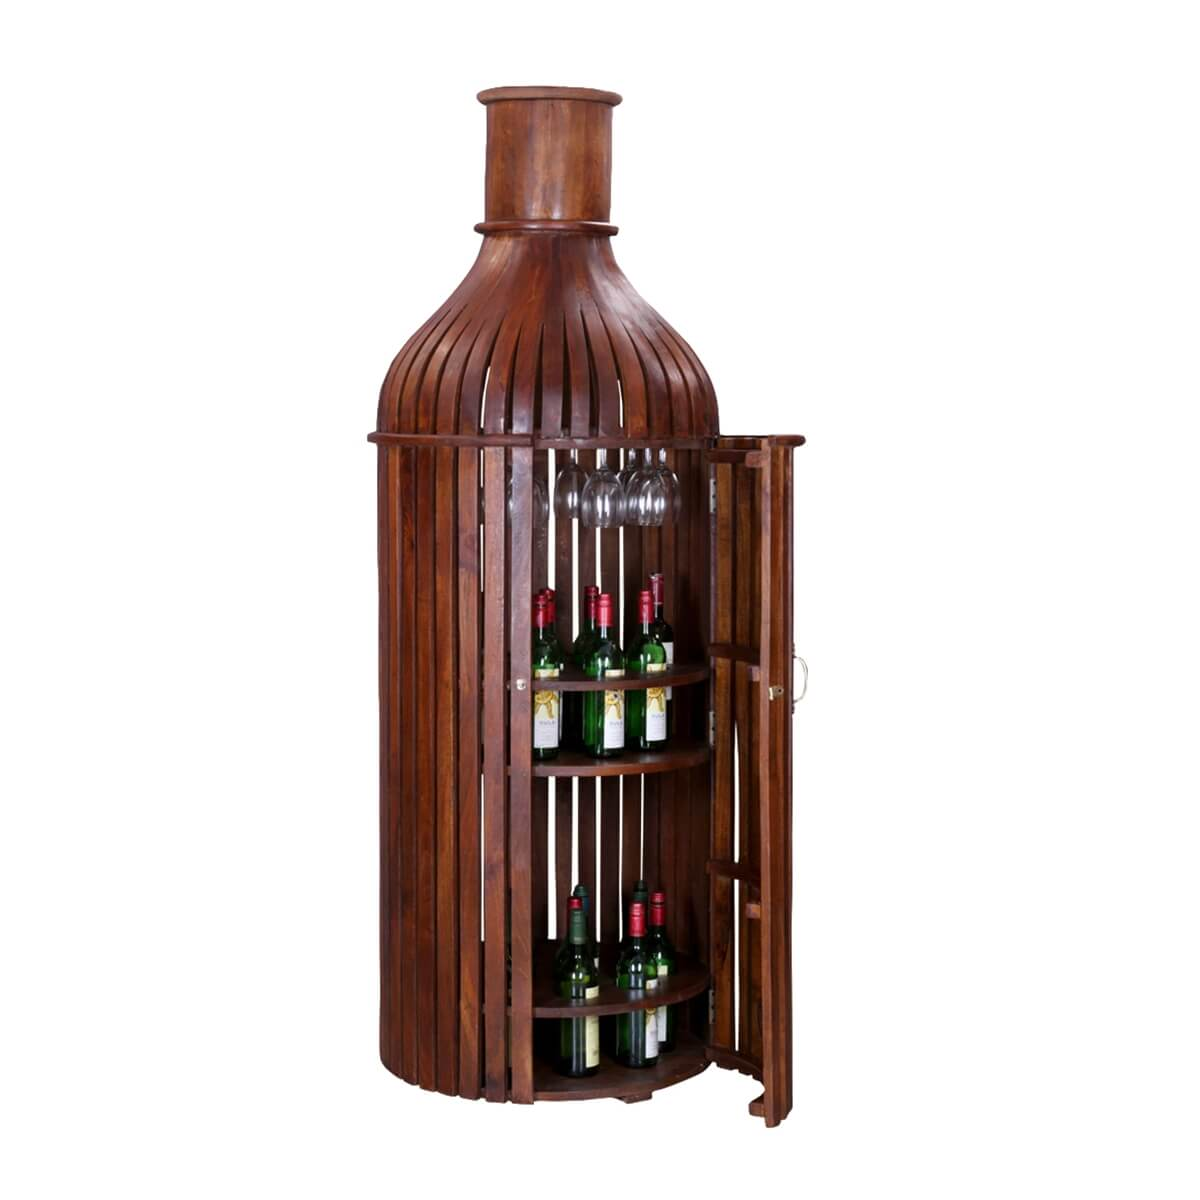 86bbf1843e Bordeaux Handcrafted Solid Wood Wine Bottle Storage Bar Cabinet